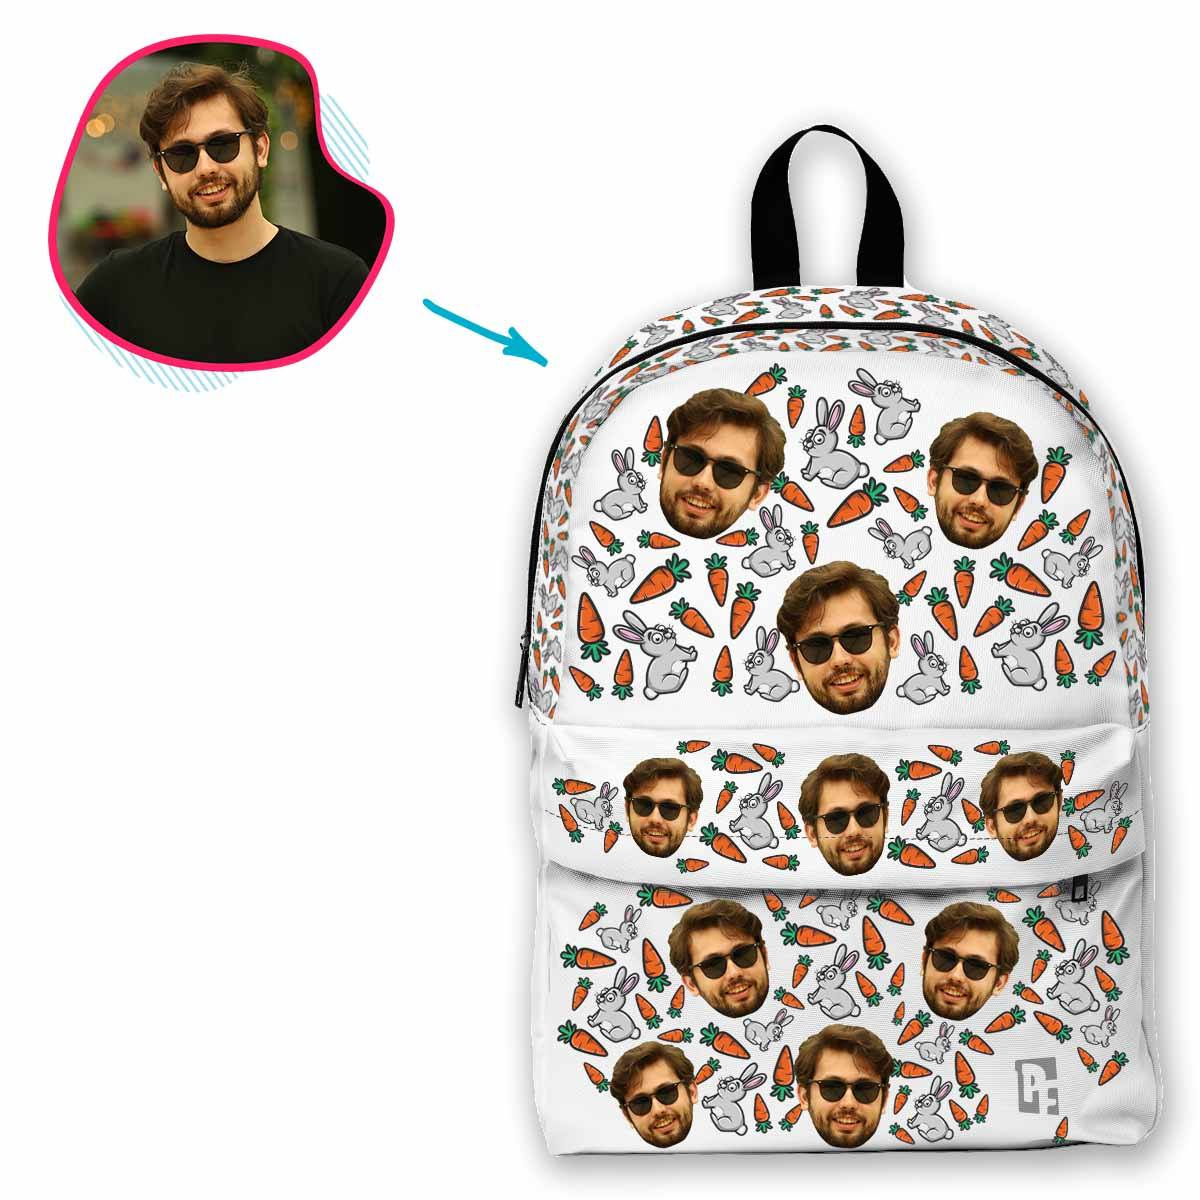 white Bunny classic backpack personalized with photo of face printed on it